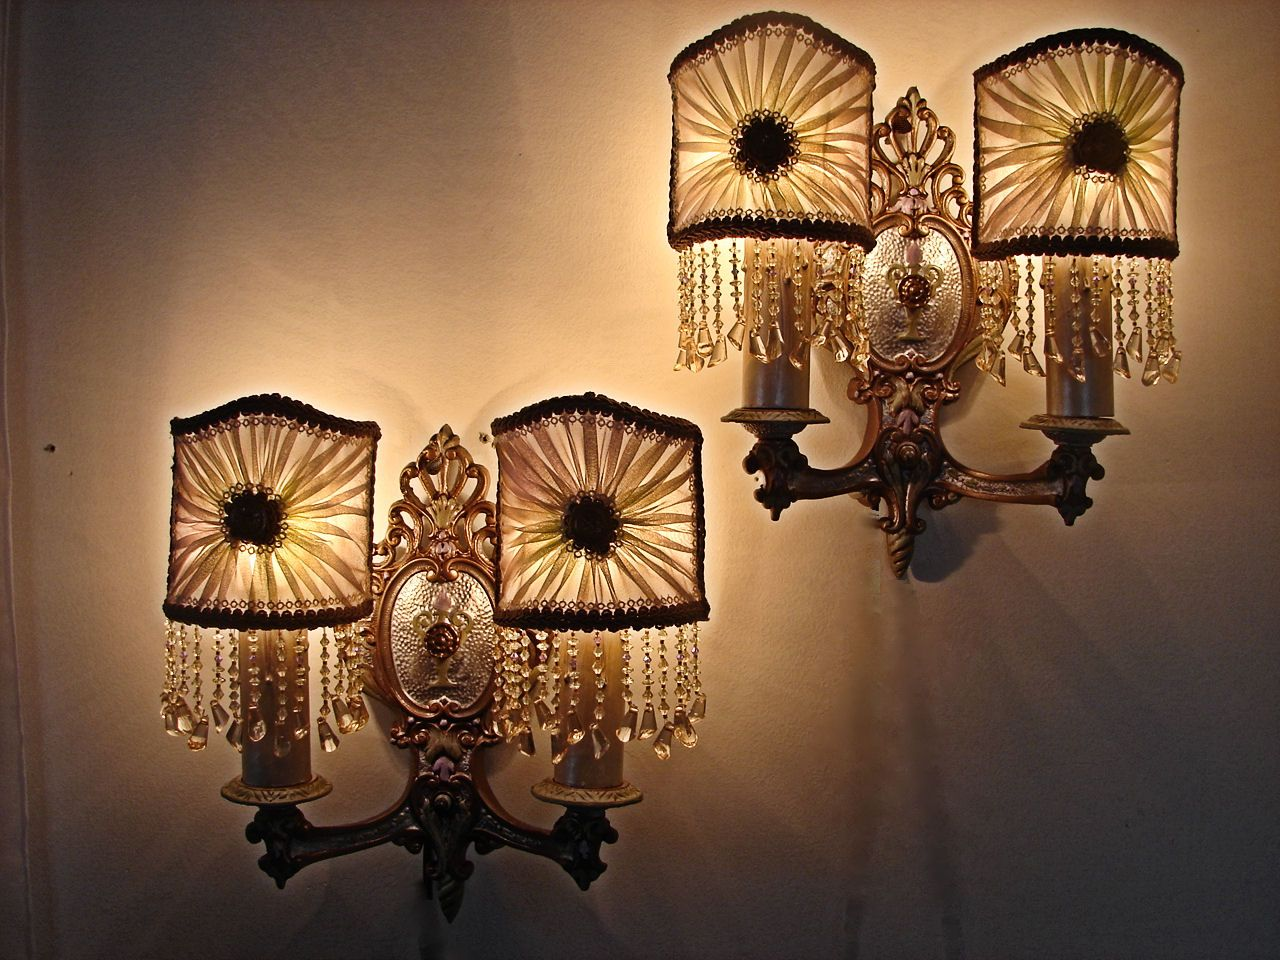 Pin by Ann Johnson on lighting | Vintage wall sconces ... on Decorative Wall Sconces Non Electric Lights For Closets id=73047